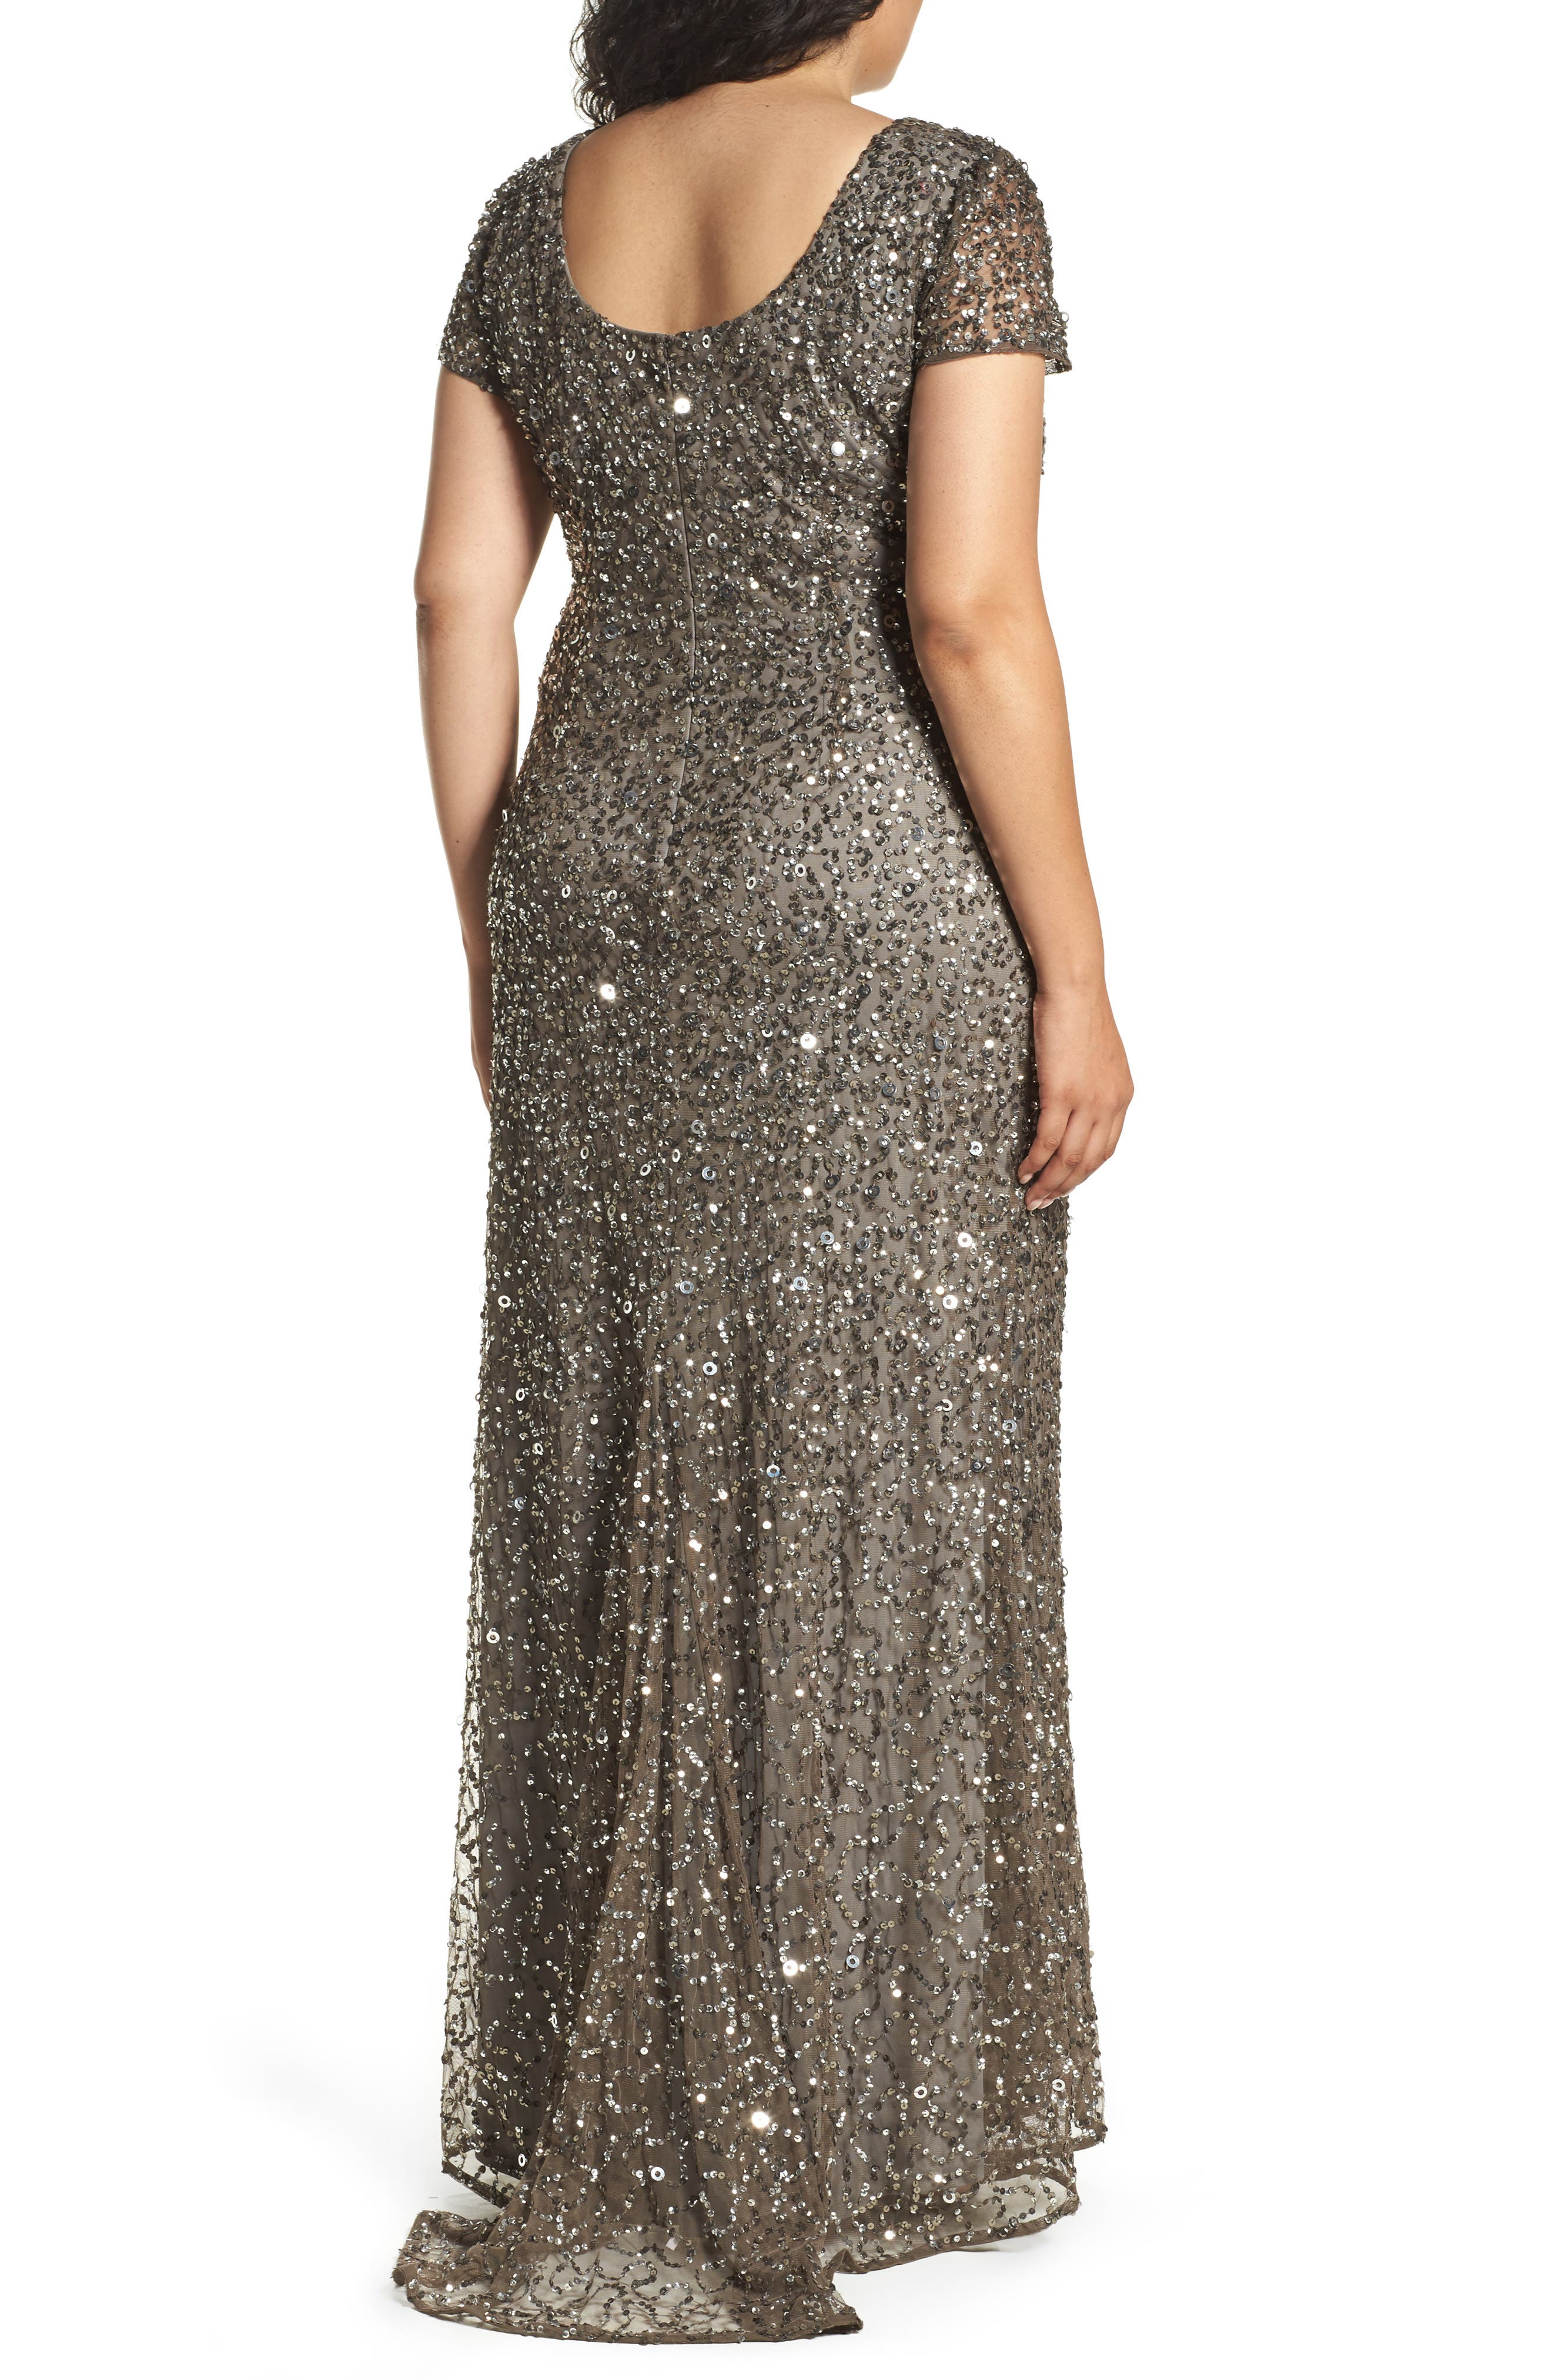 ADRIANNA PAPELL, Embellished Scoop Back Gown, Alternate thumbnail 2, color, 050